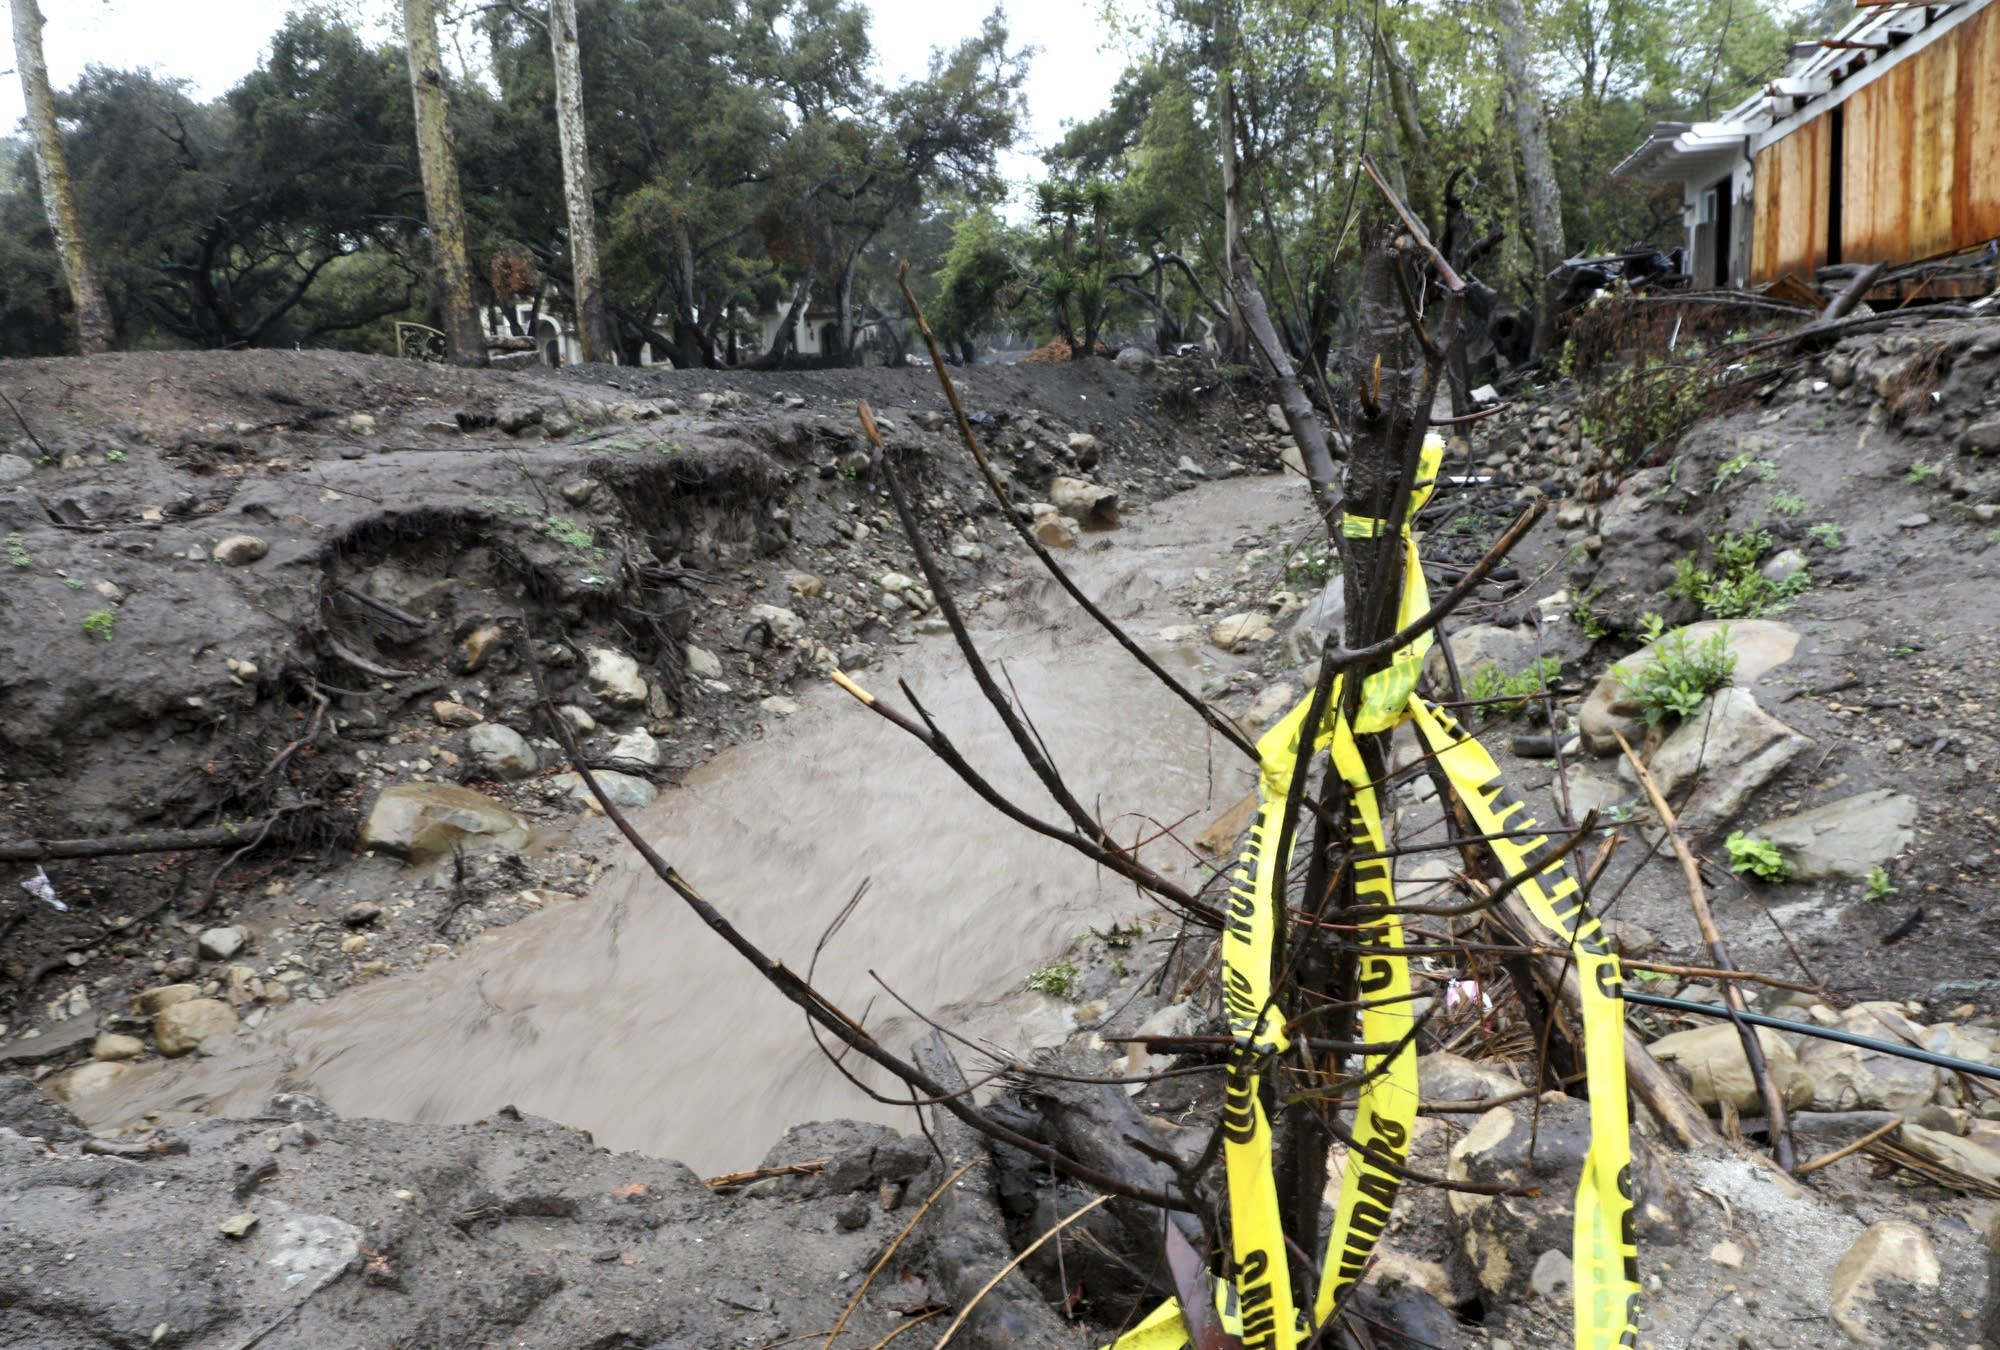 The scene last month in Montecito, California, after a powerful storm hit.